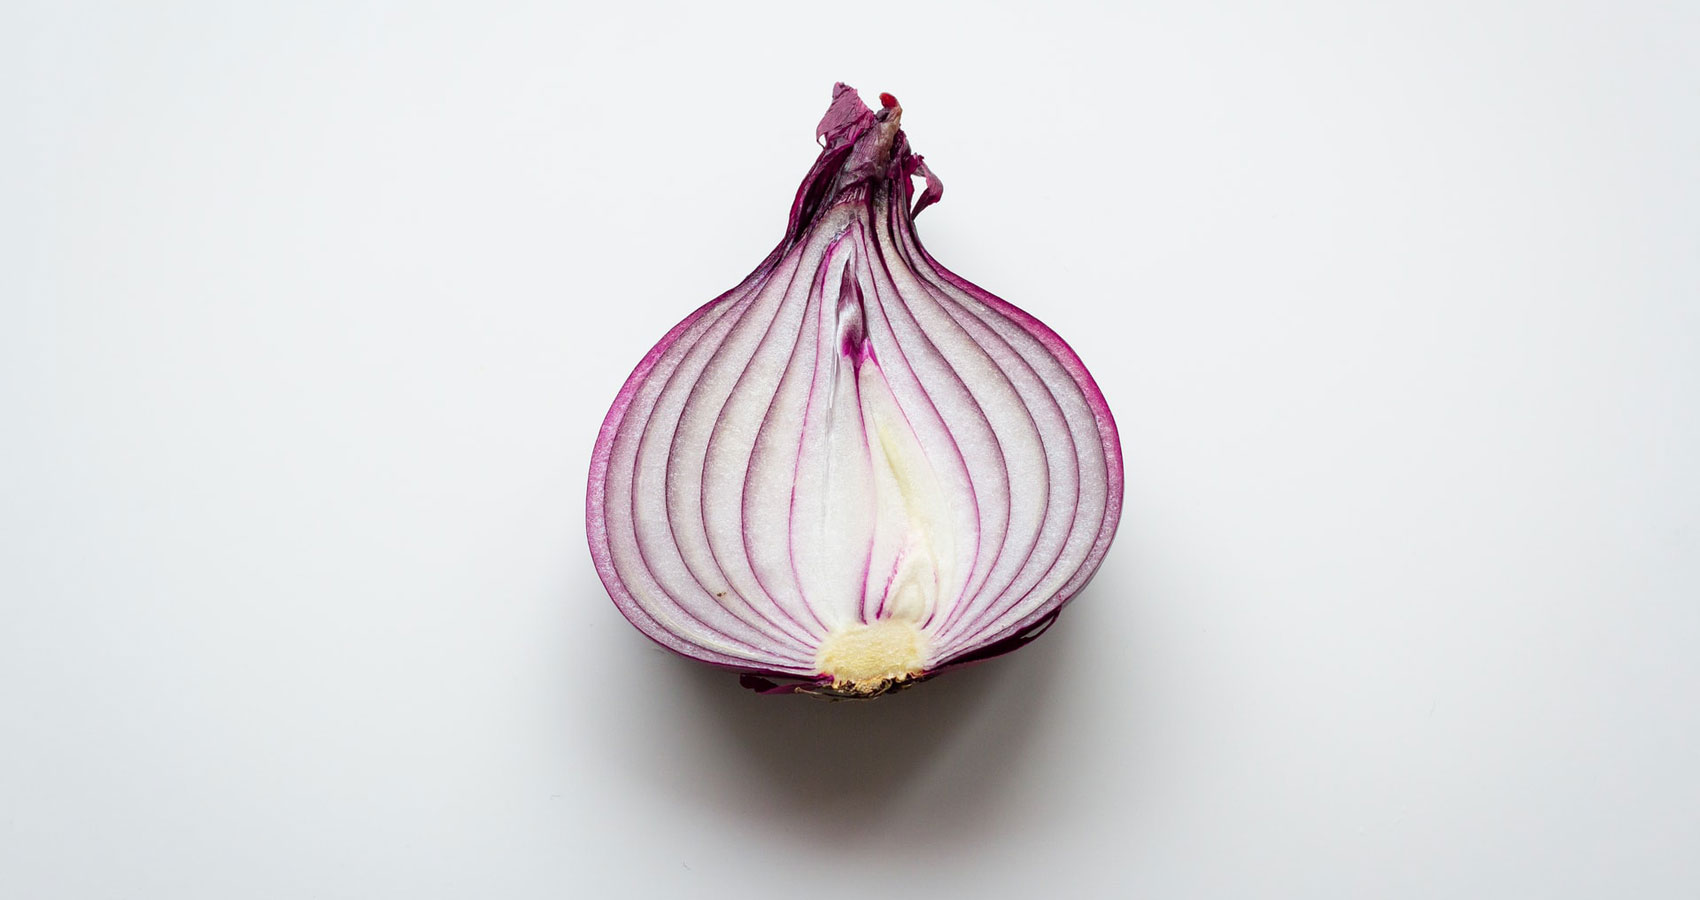 Human Onions, poetry by Fay Marmalich-Vietmeier at Spillwords.com